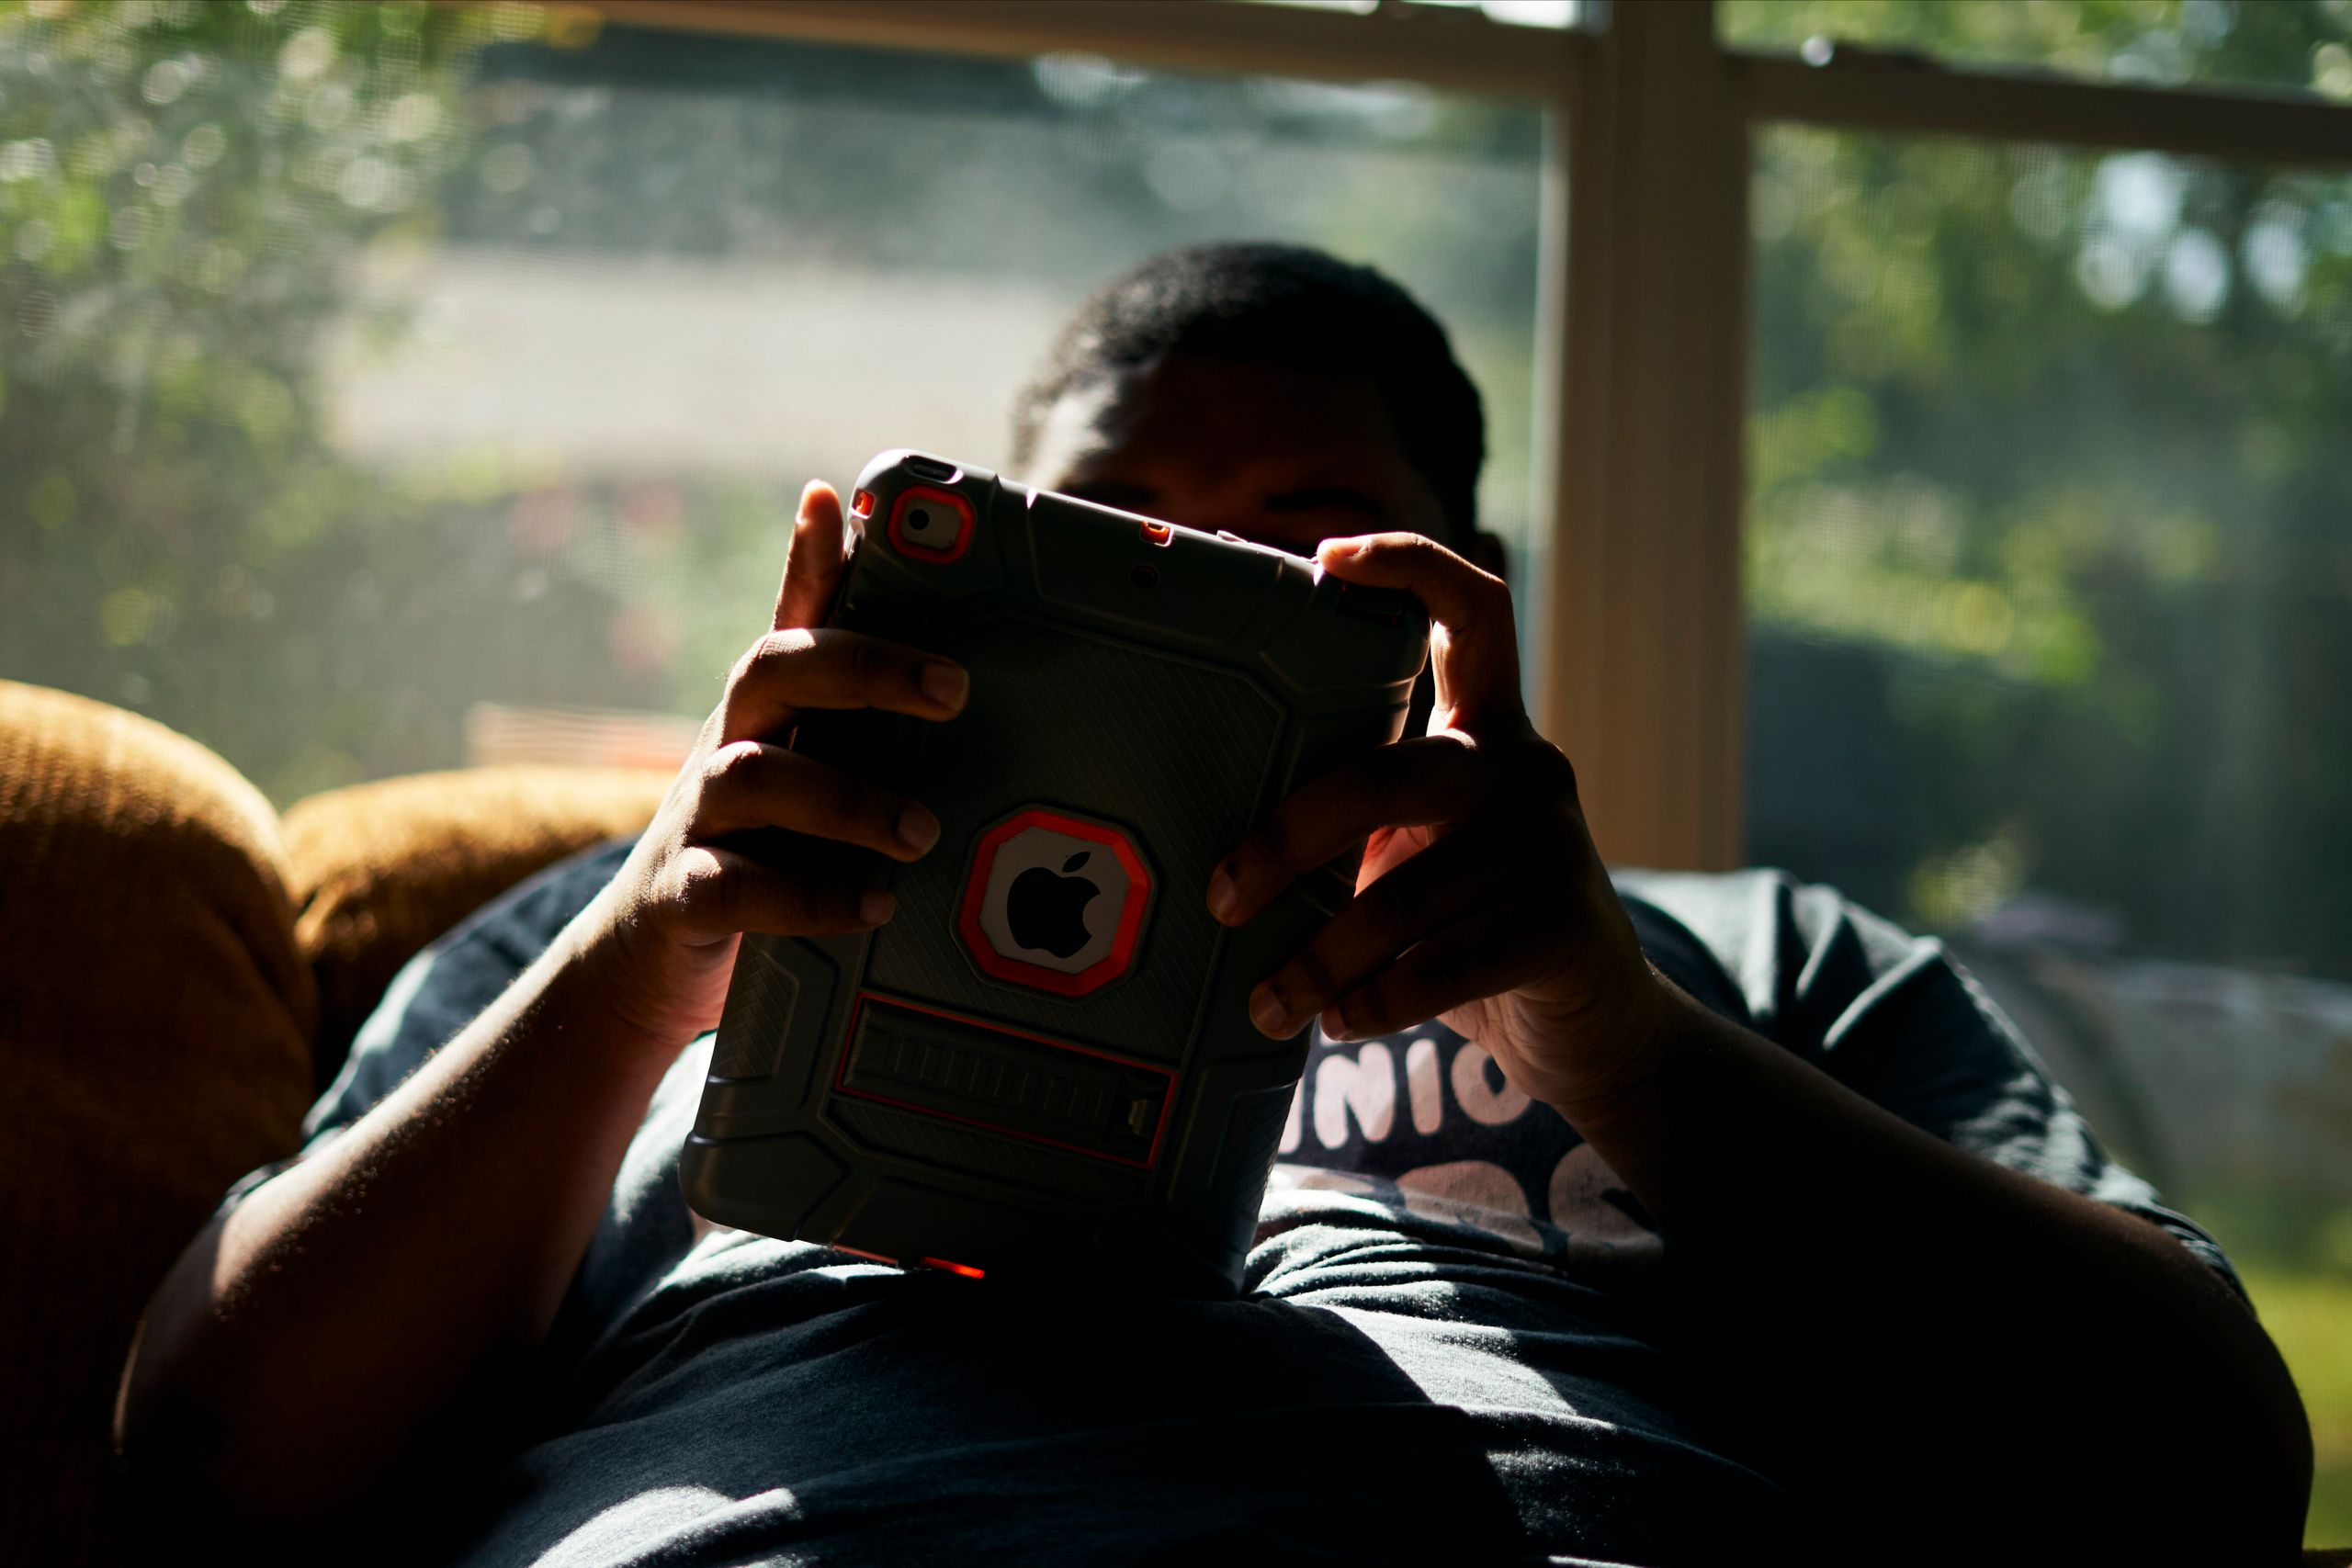 J.H. listens to music on his iPad in the sunroom at his home in Shreveport, Louisiana, on Aug. 25.